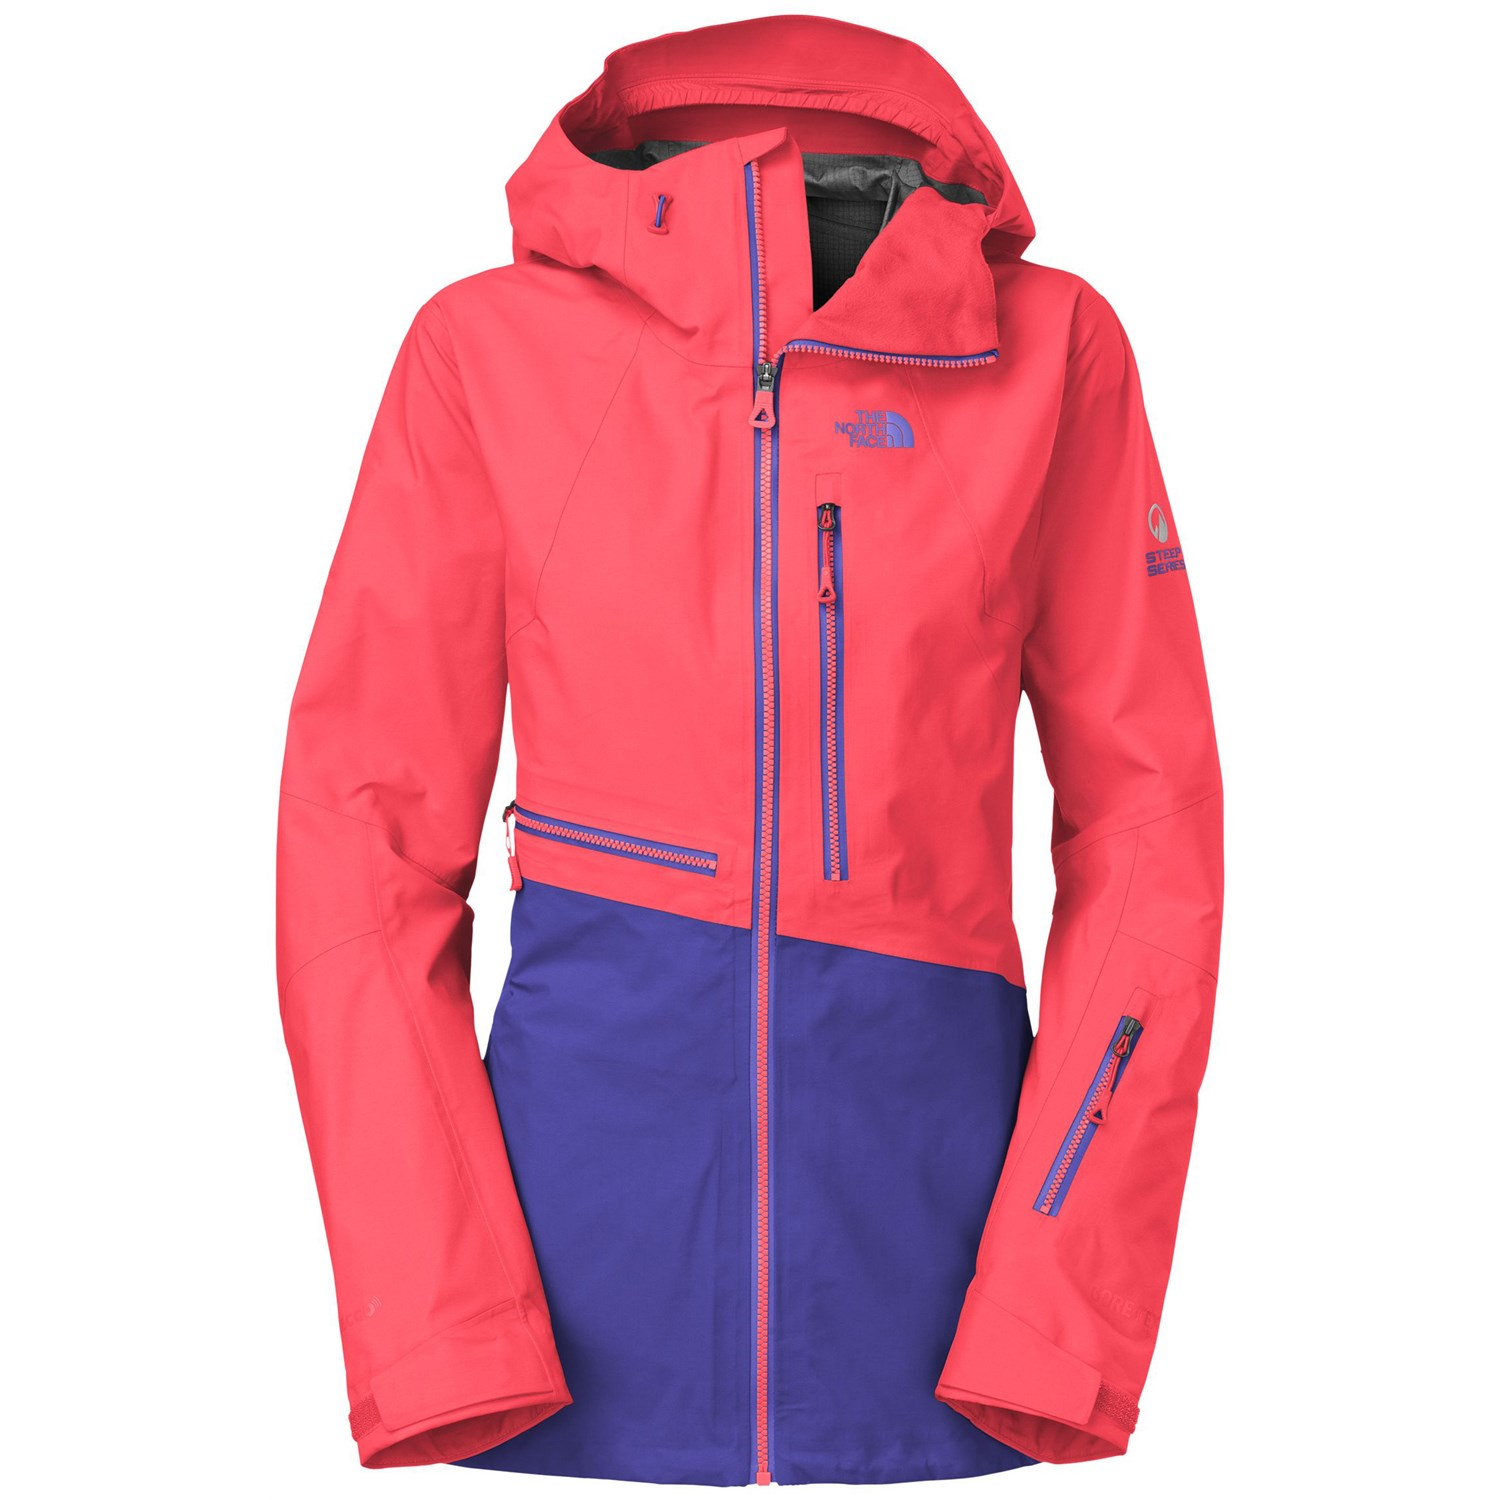 6eded436b0 The North Face Free Thinker Jacket - Women s